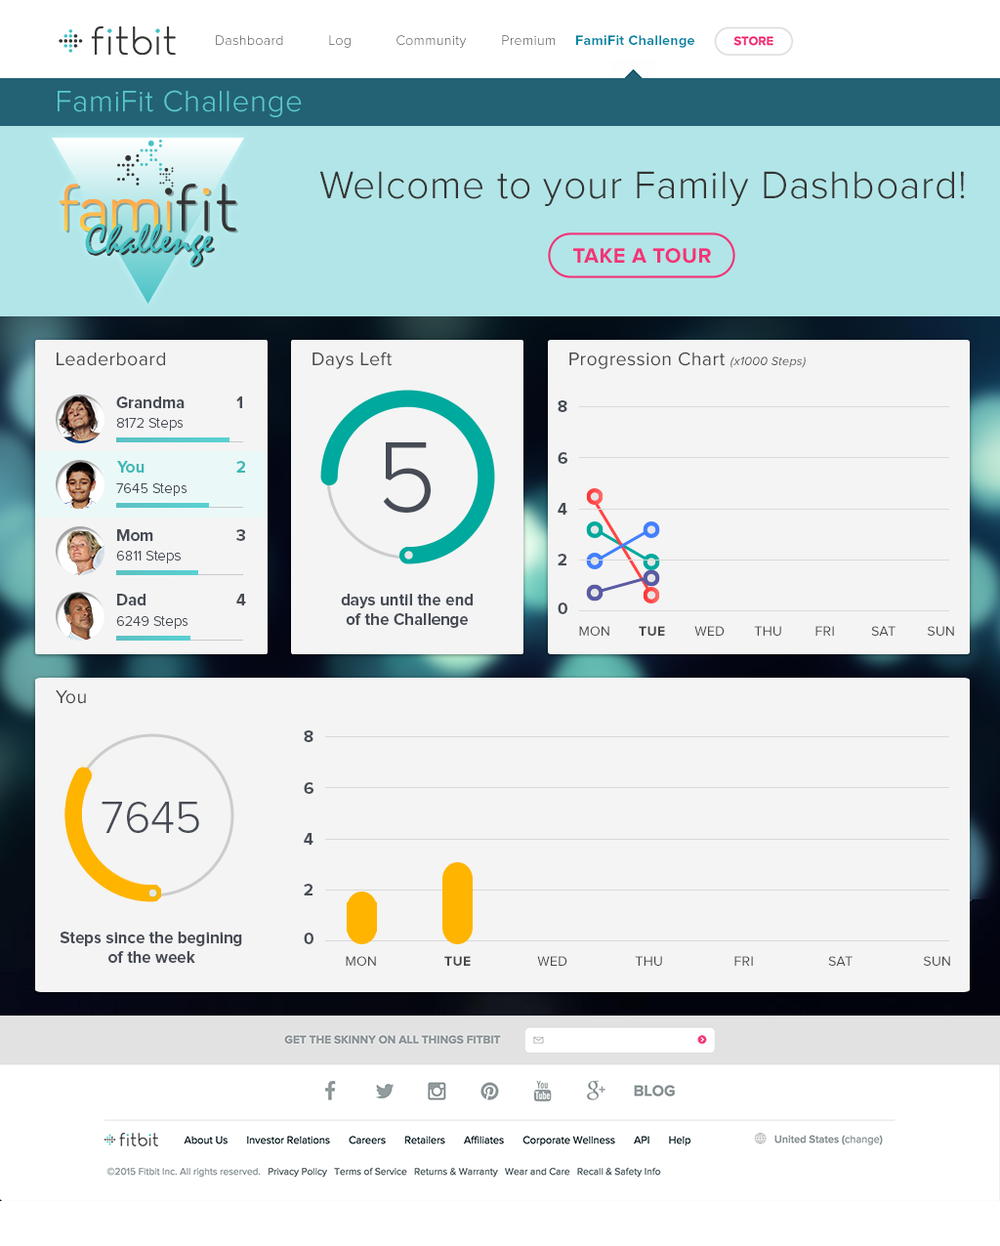 Fitbit_Website_03_Dashboard.png